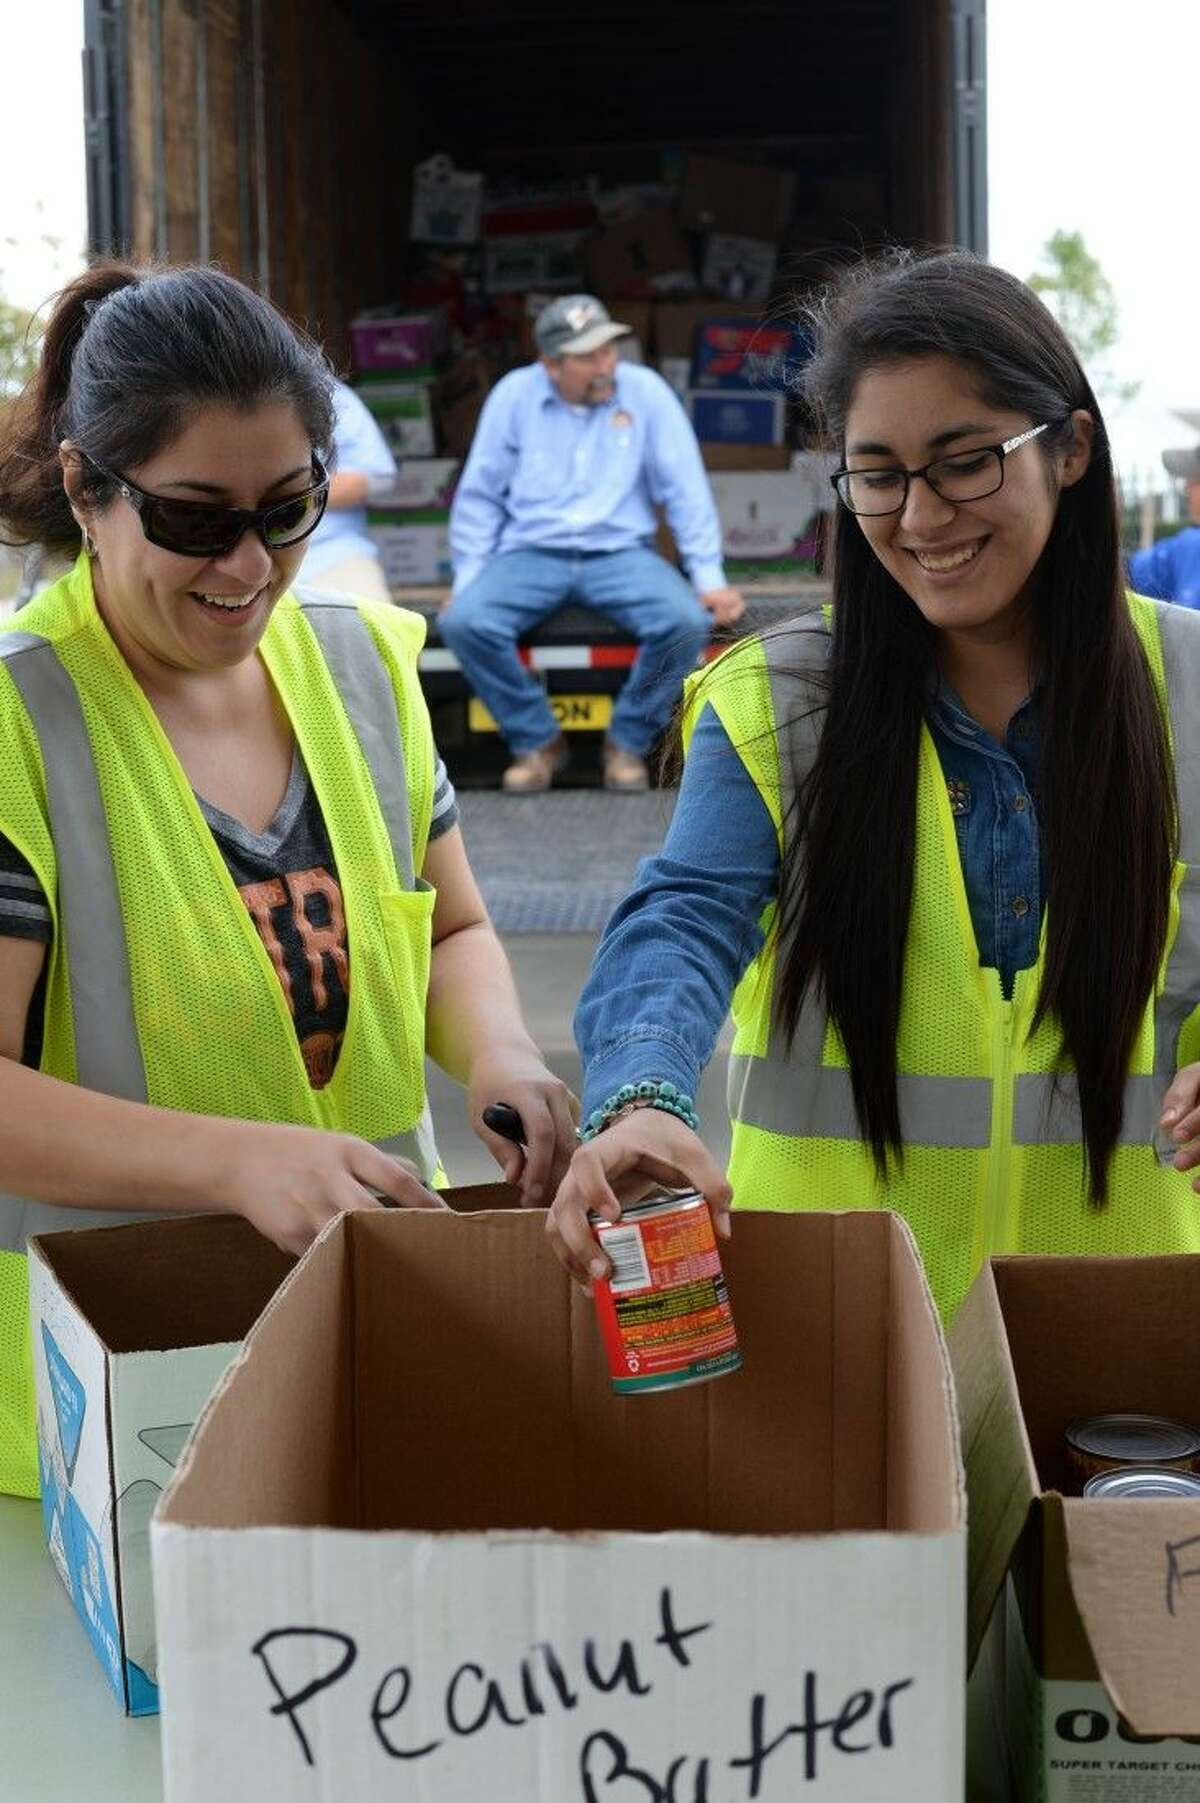 Volunteer Cynthia Navarro, left, found out about the food drive on a sign, and wanted to be part of it. Her daughter joined the volunteer team after school.